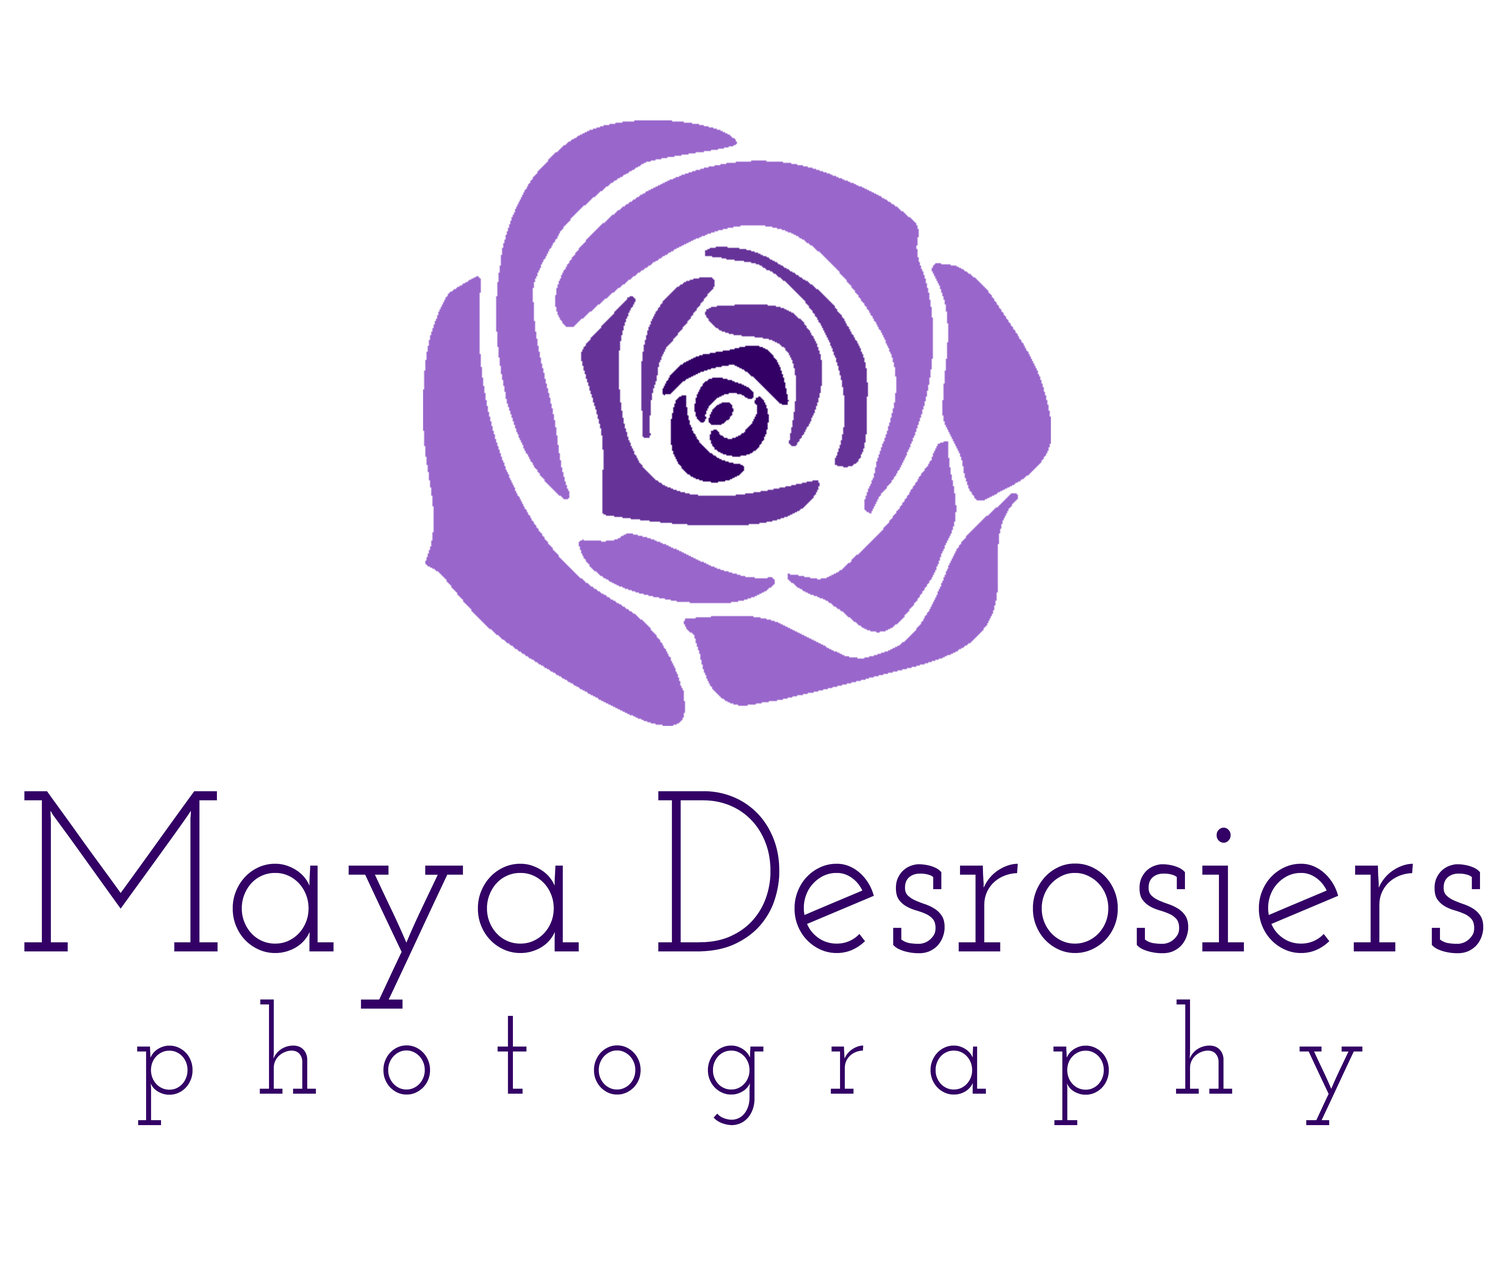 Maya Desrosiers Photography